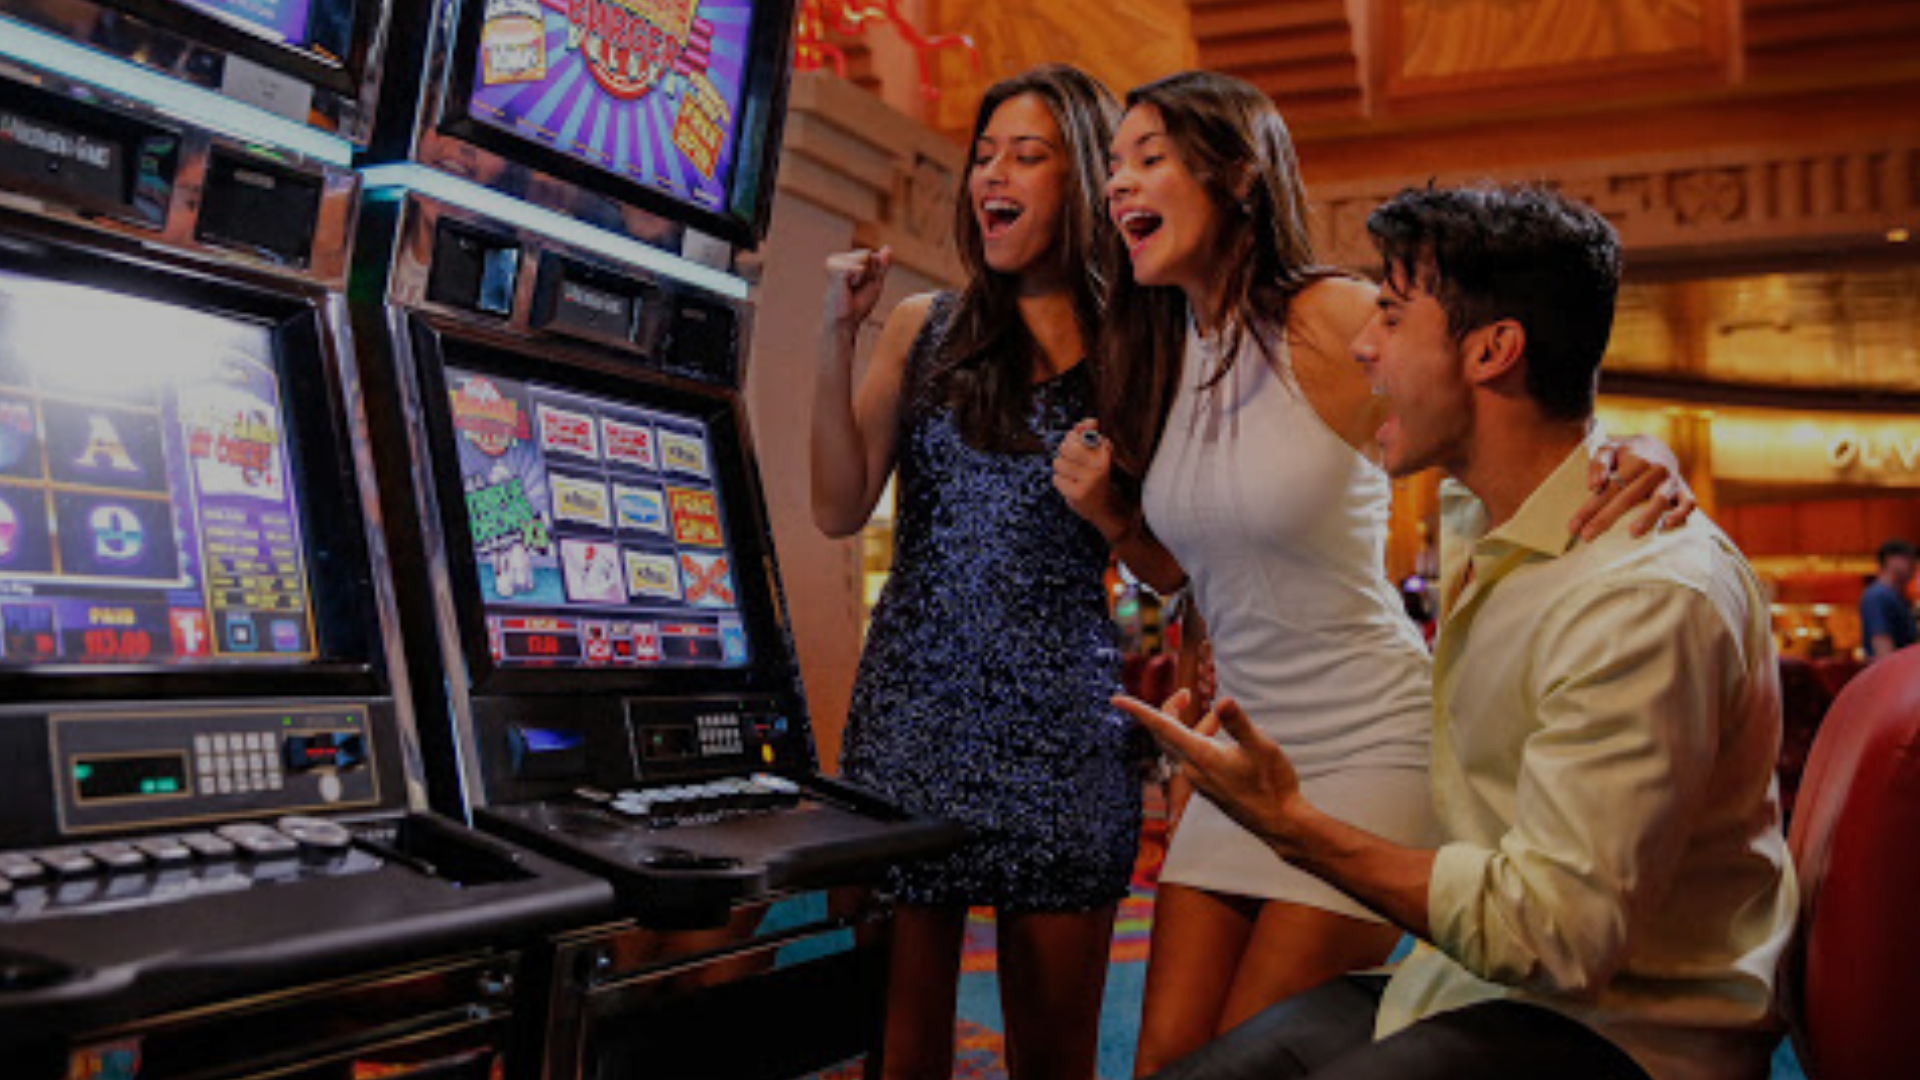 About Casinos